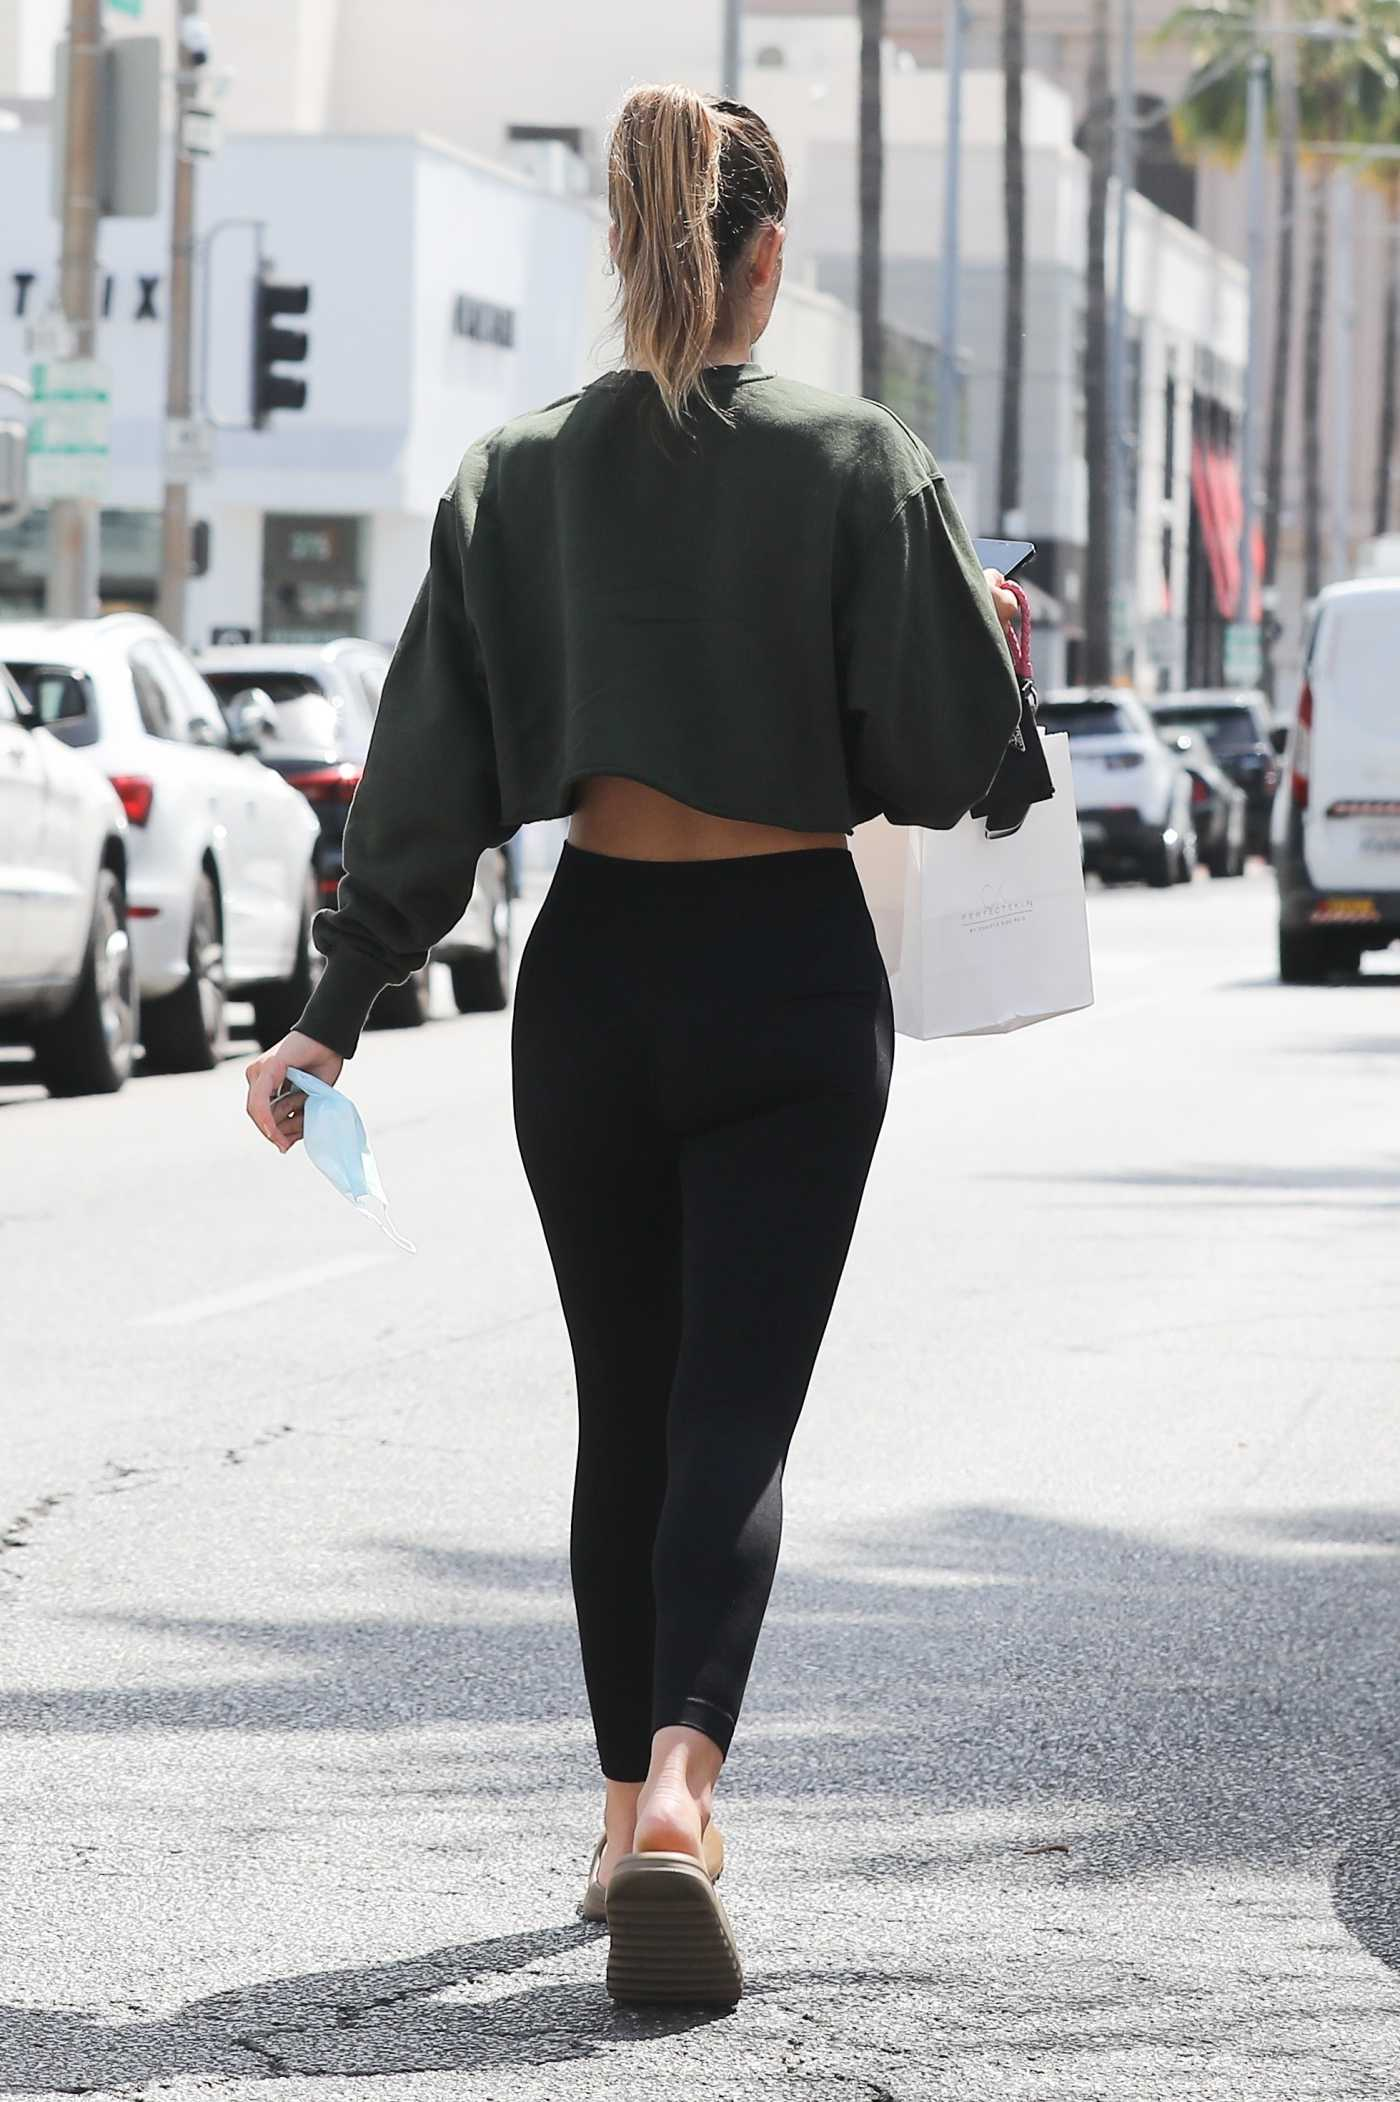 Amelia Hamlin in a Black Leggings Leaves a Pilates Class in Beverly Hills 05/12/2021